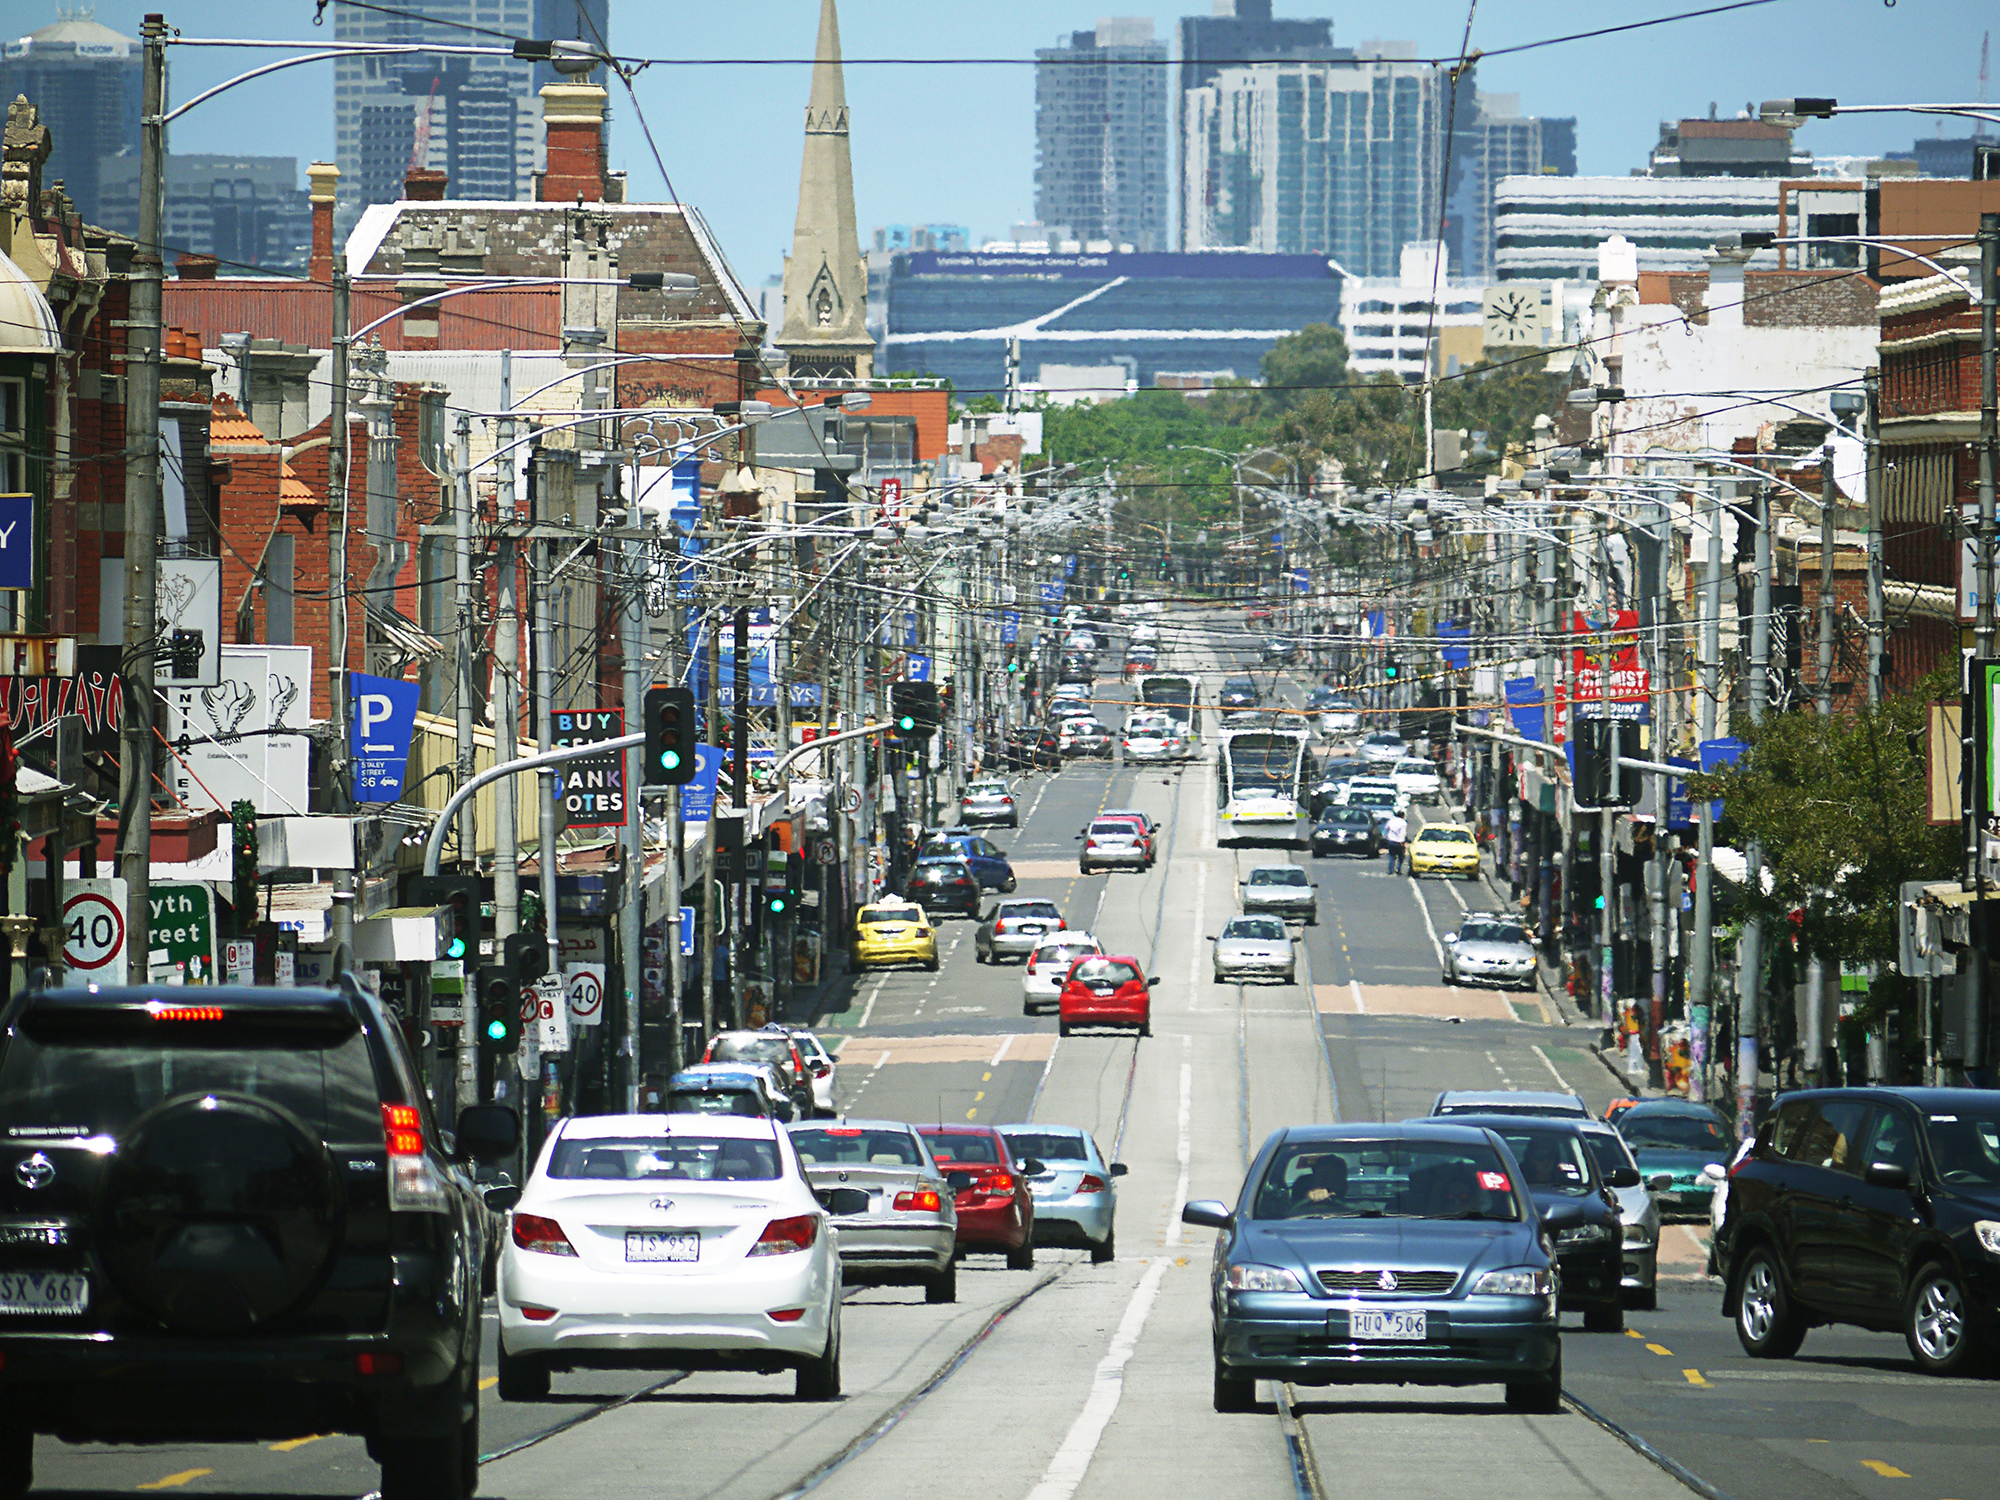 Sydney Road, Brunswick - Brunswick Design District - article by Ethical Design Co.